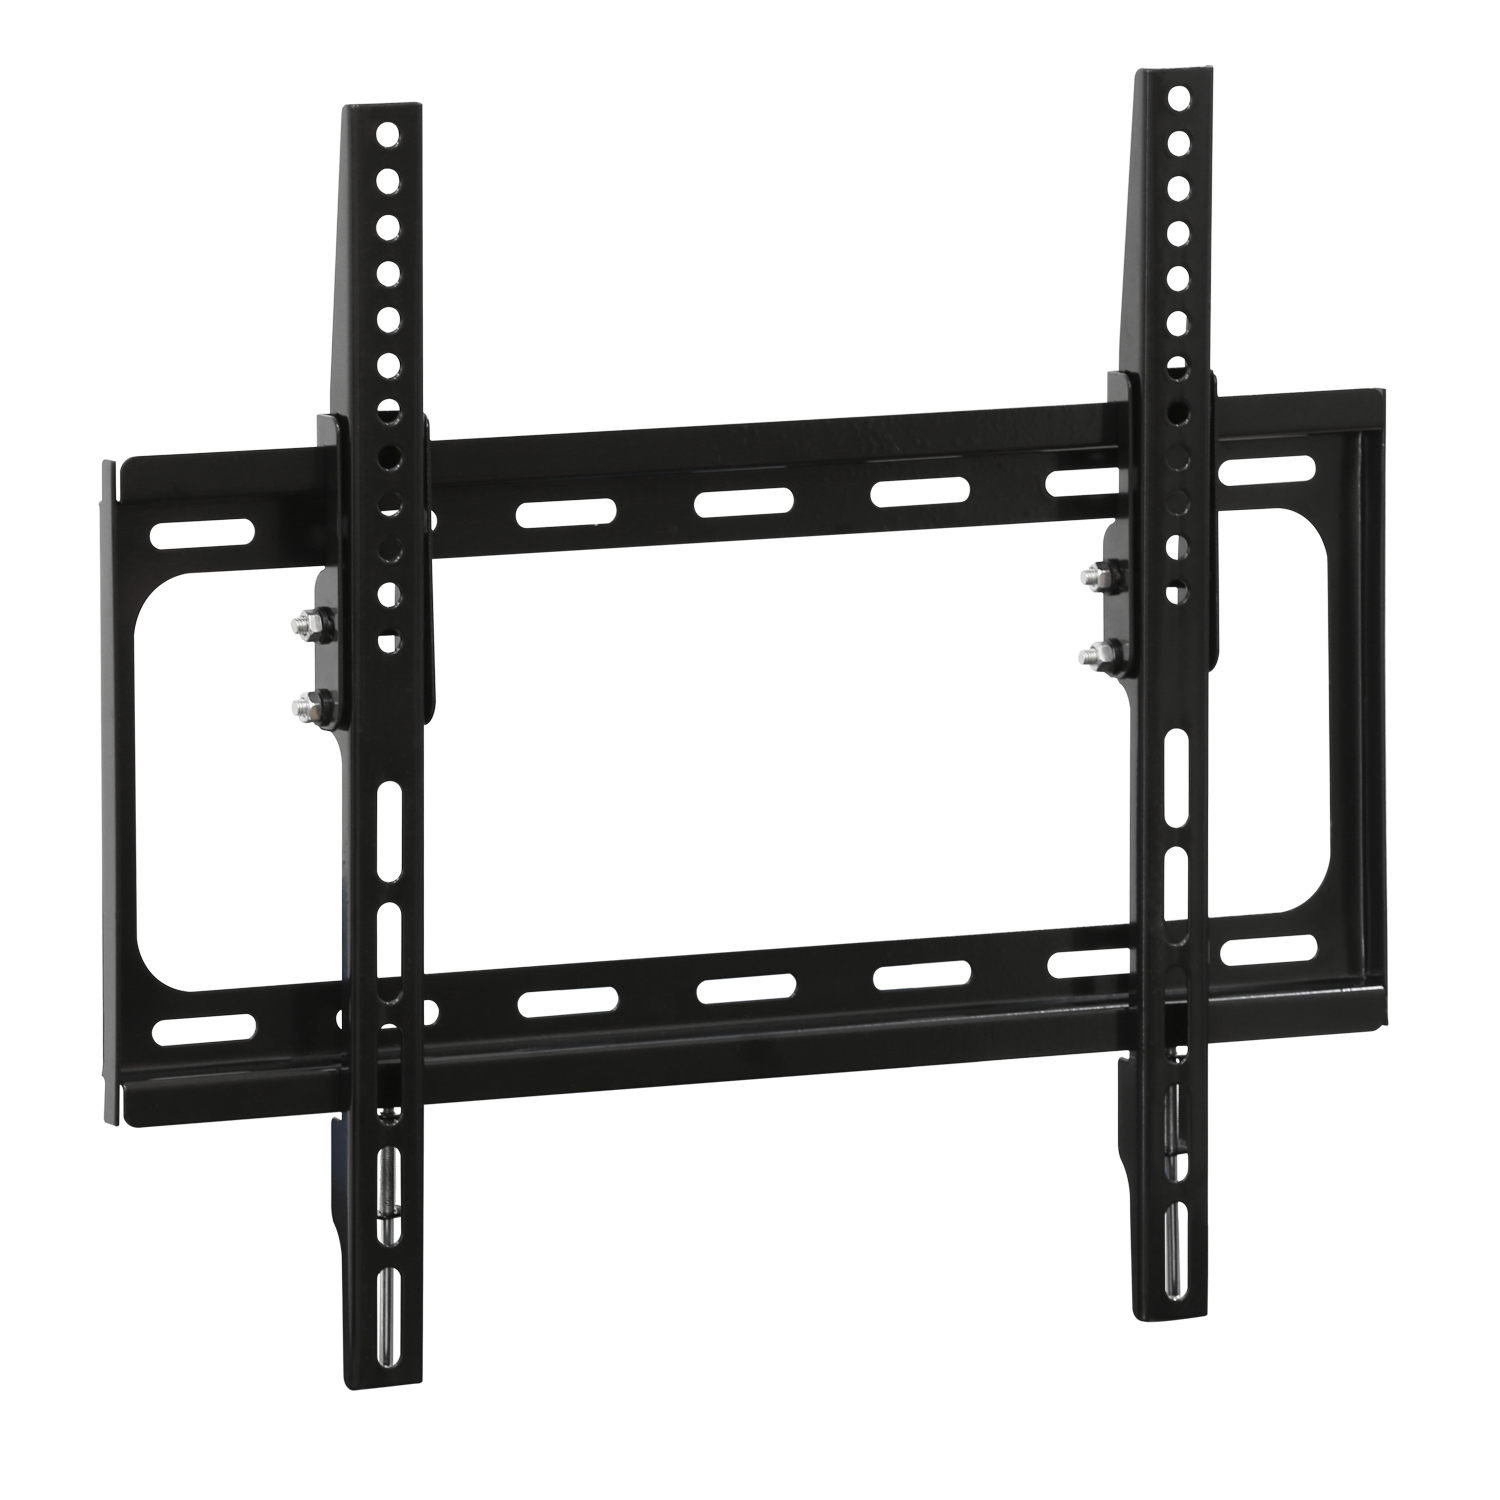 Furinno Modern Wall Mount TV Bracket for TV up to 65 Inch by Furinno